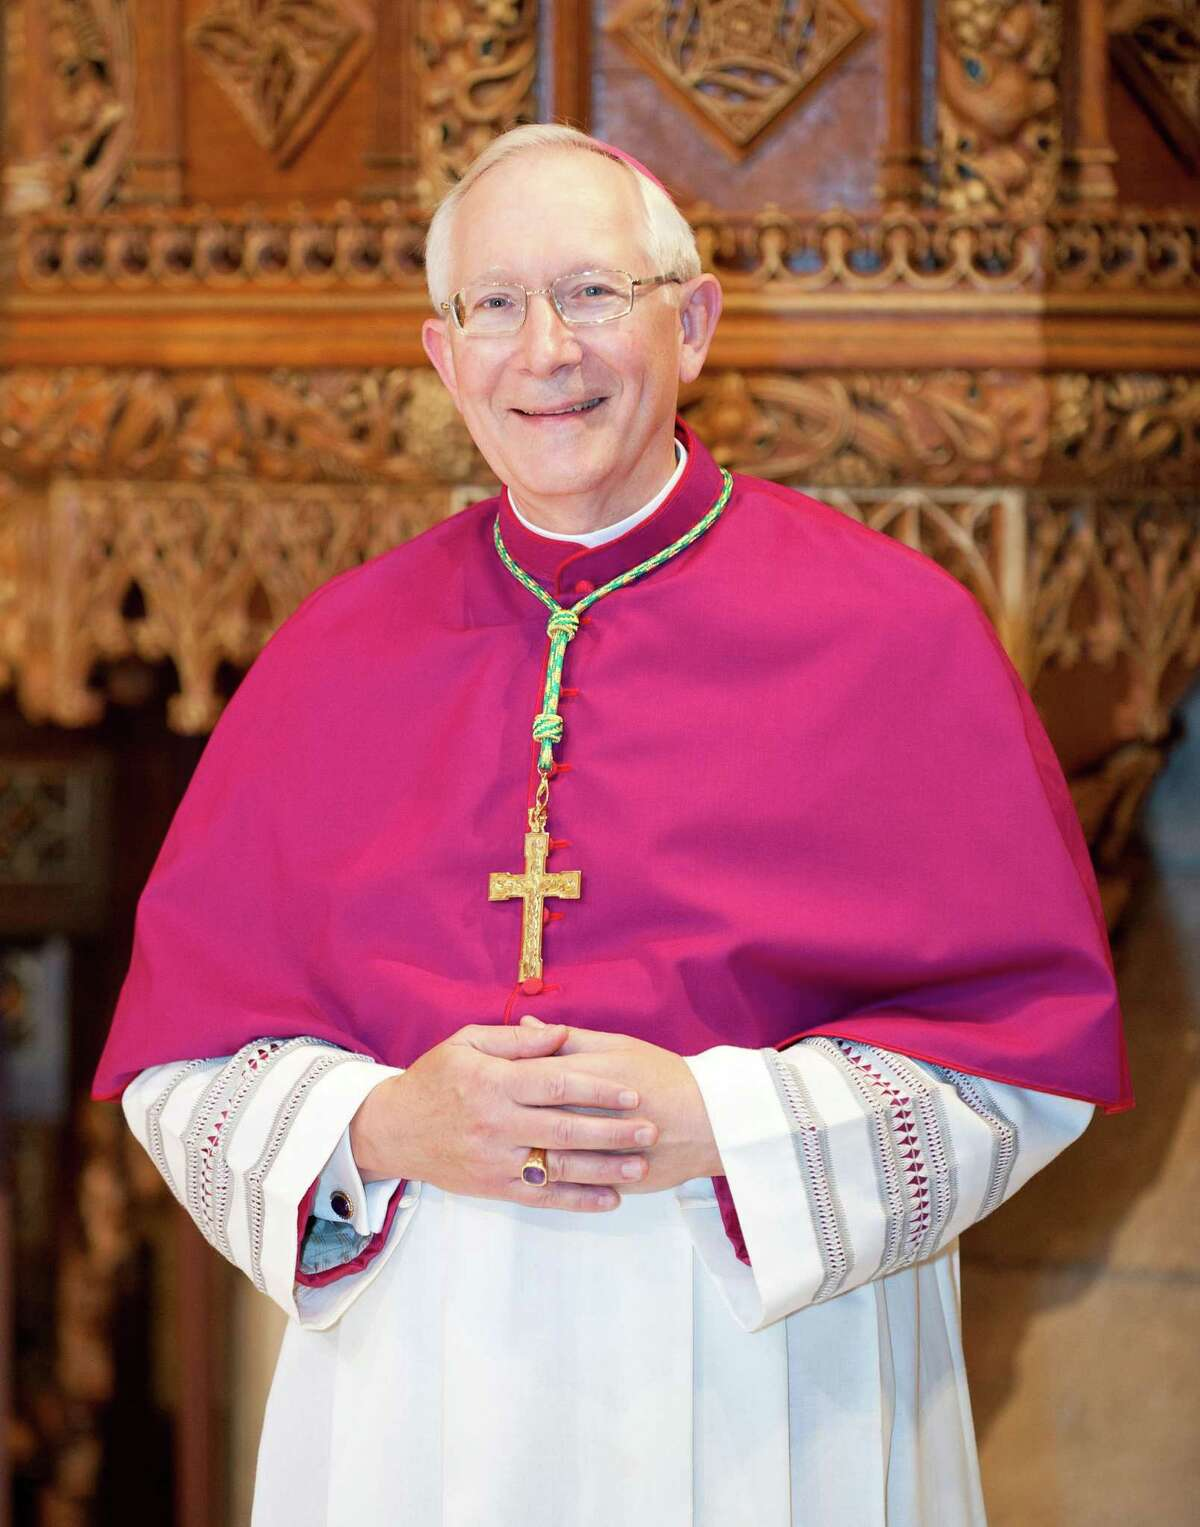 The Most Reverend Leonard P. Blair is Archbishop of the Archdiocese of Hartford.